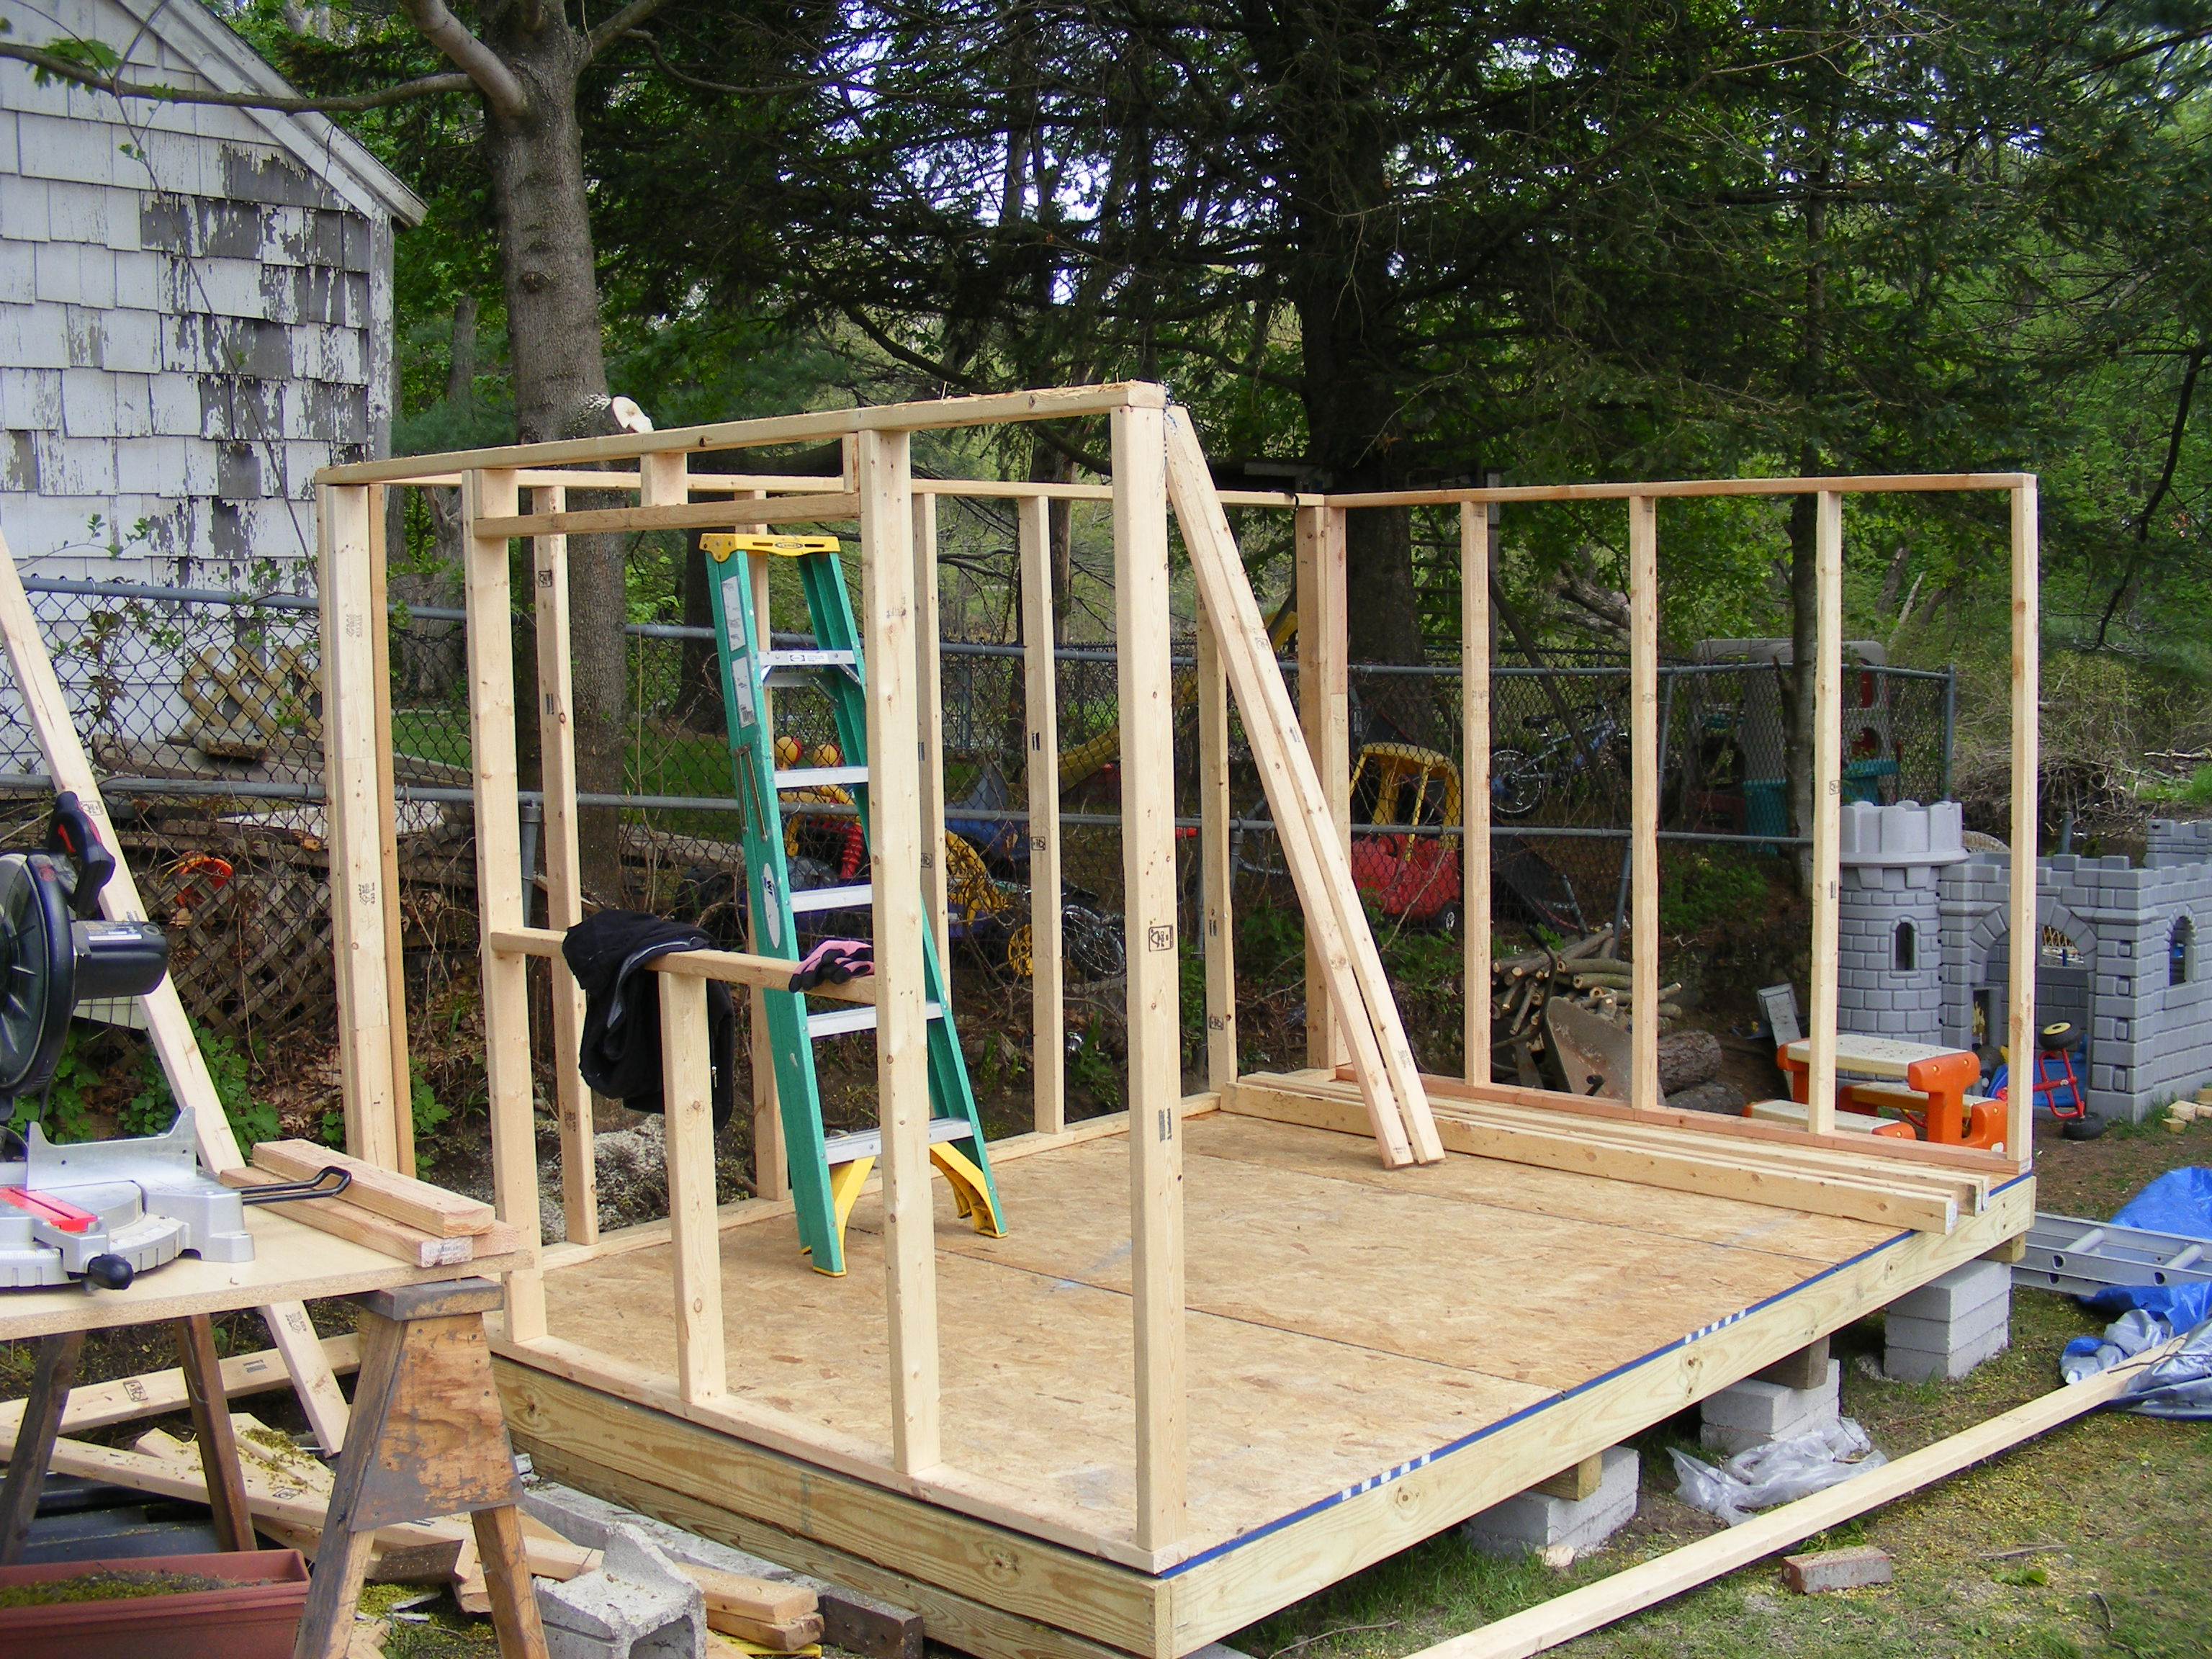 Build Shed : Free Back Yard Shed Plans And Blue Prints Are Available For You | Shed Plans Kits